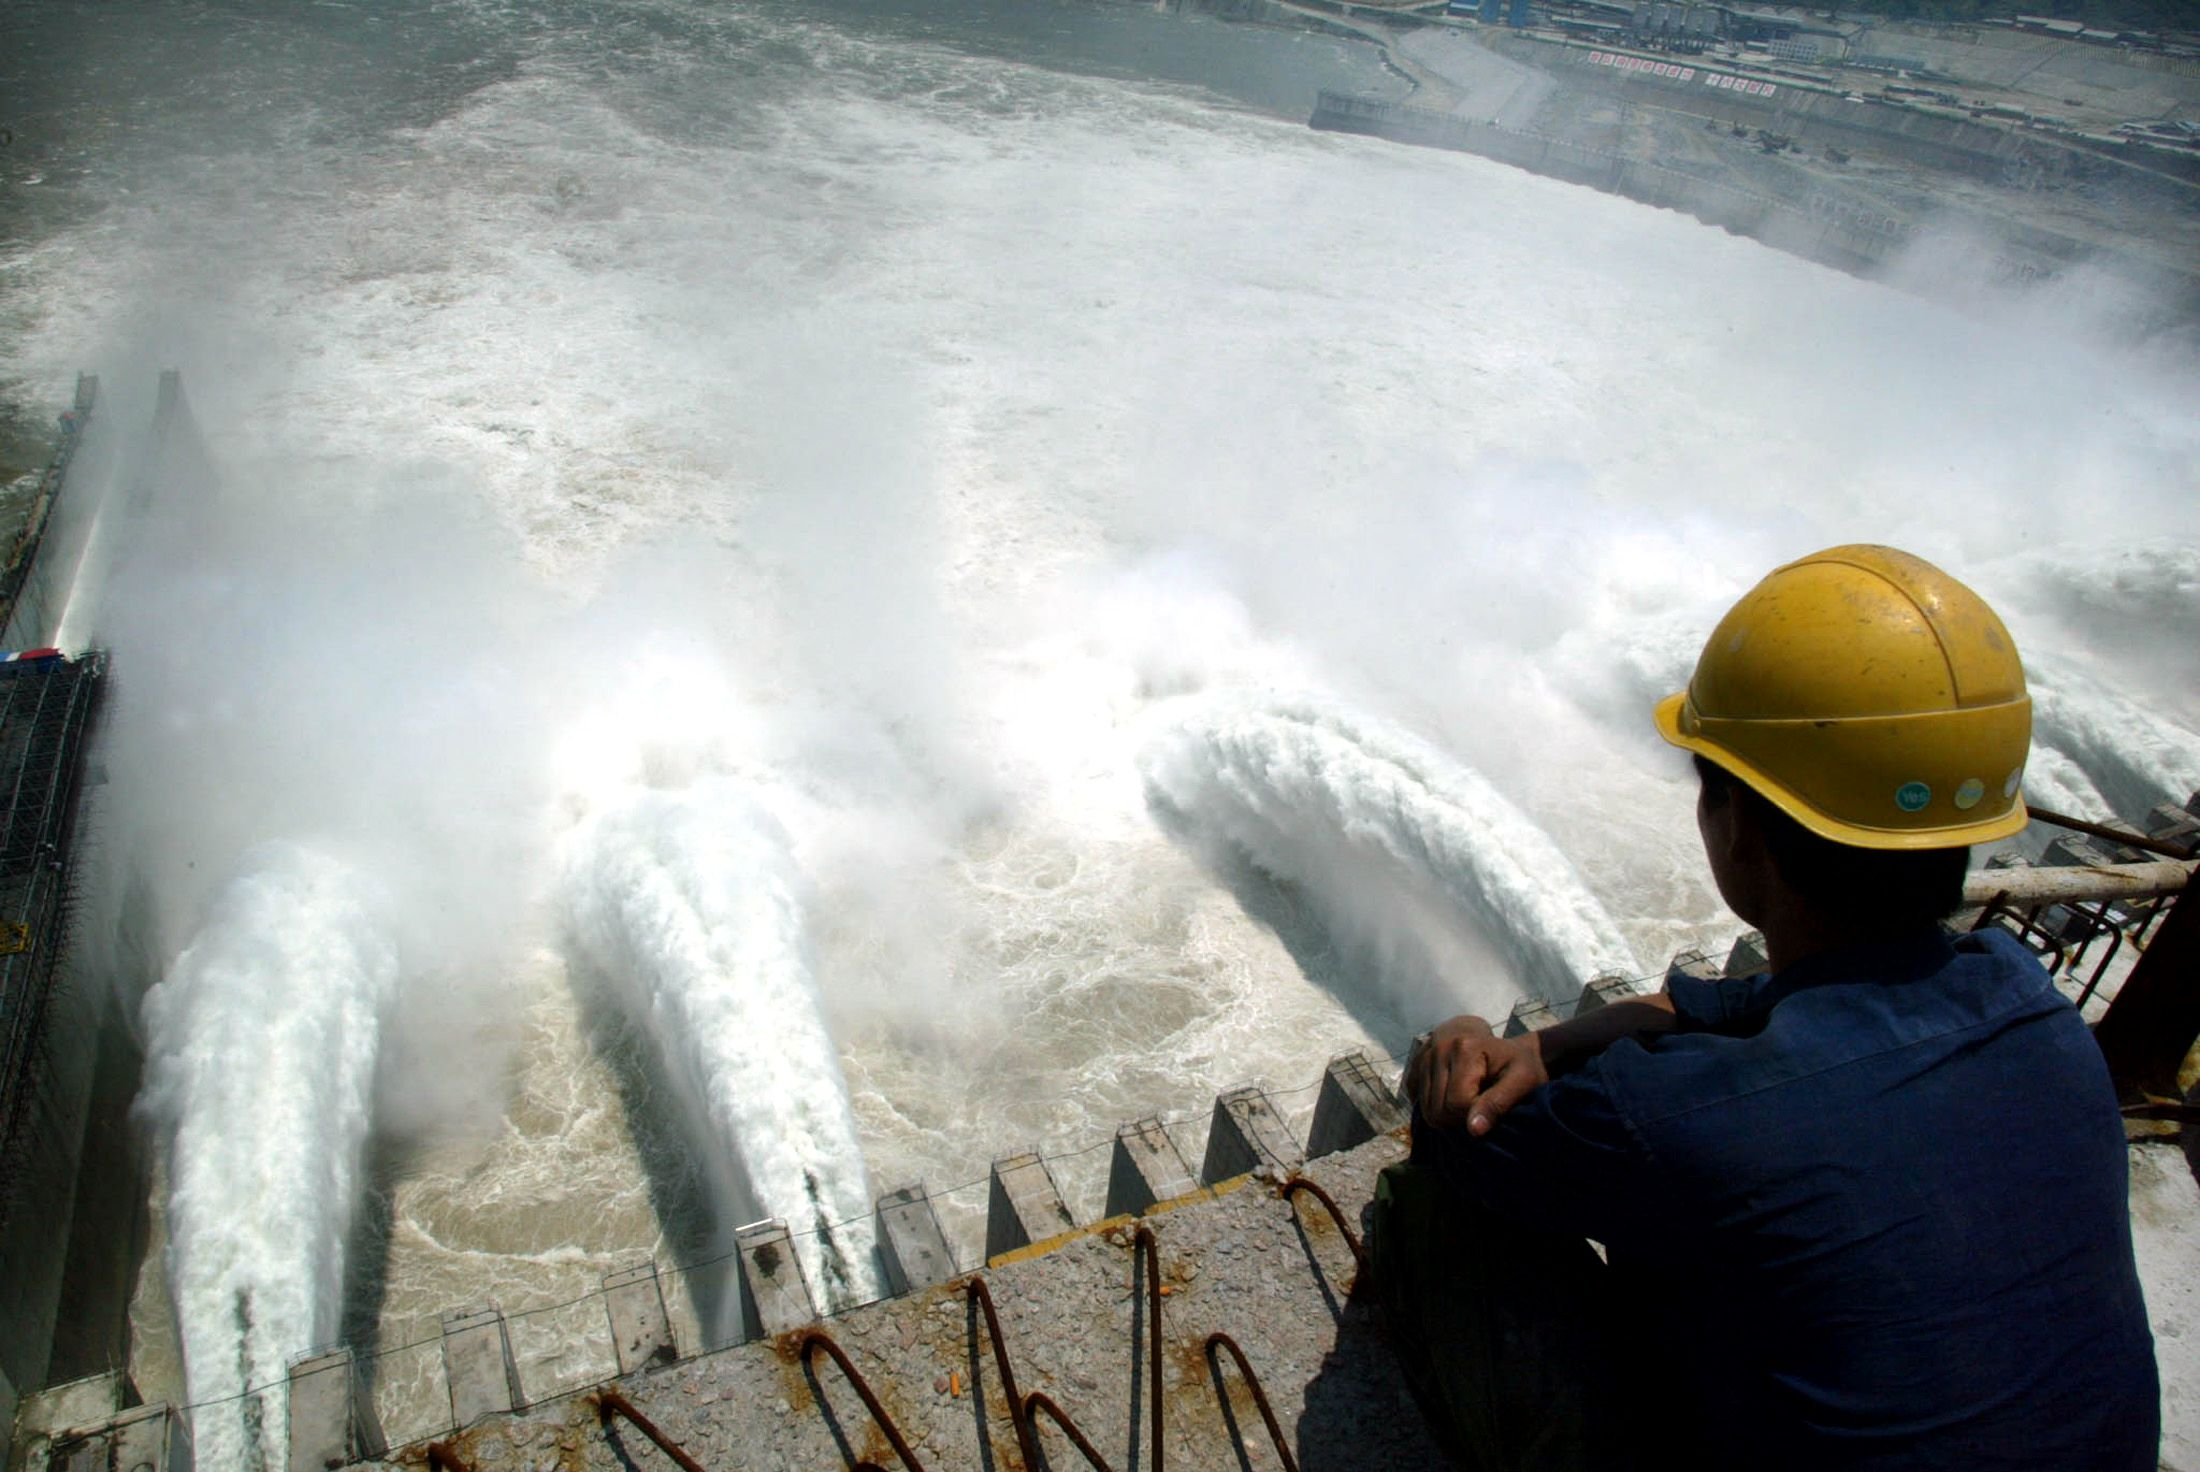 A Chinese worker looks at water gushing from open sluice gates on the main dam of the Three Gorges project in Yichang, Hubei Province, June 11, 2003. China successfully filled the water level up to 135 metres at a 600-metre-long reservoir for the world's biggest hydroelectric project after blocking the massive Yangtze River